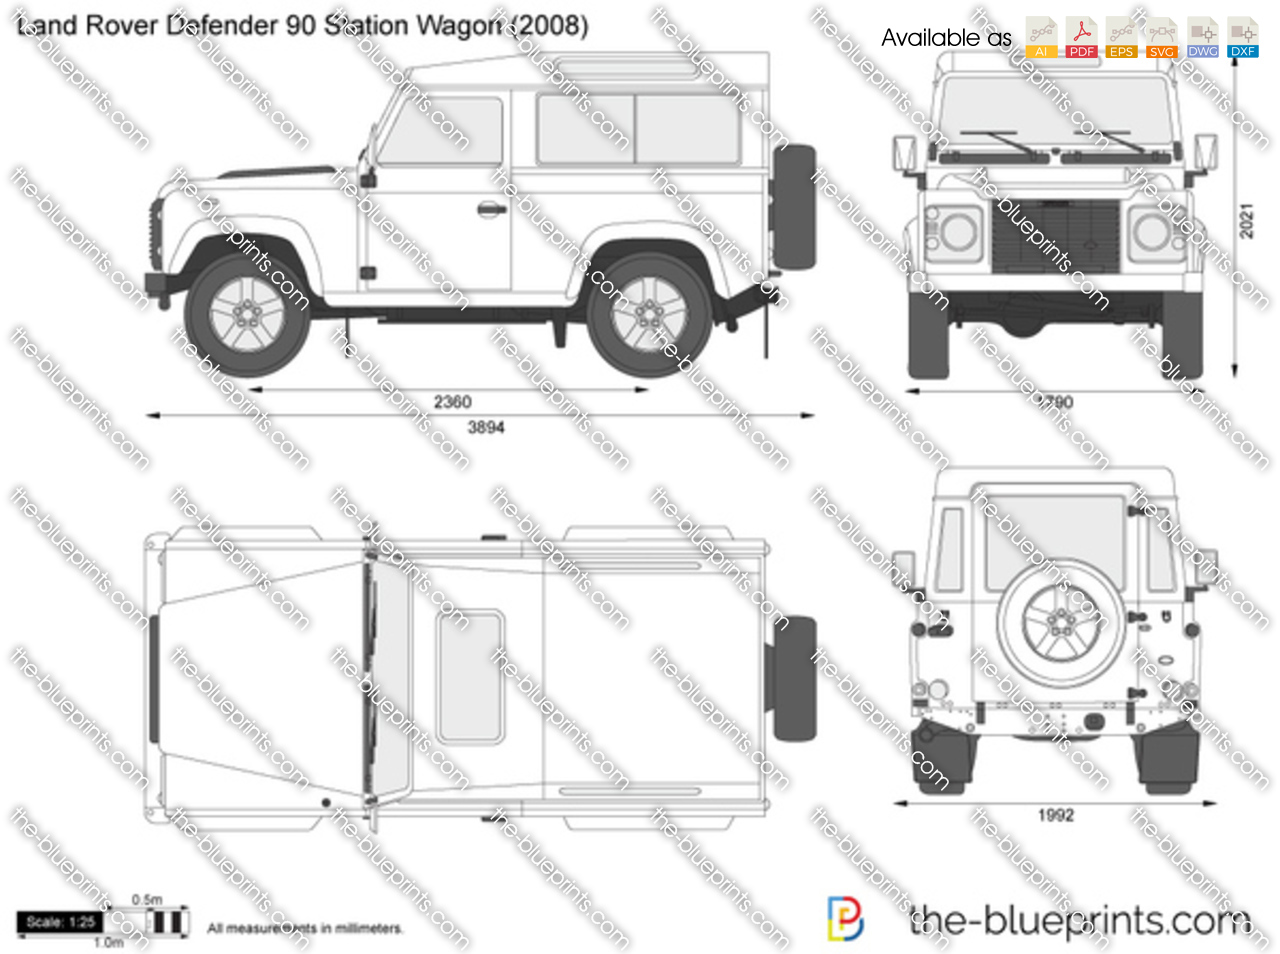 Land Rover Defender 90 Station Wagon 2018